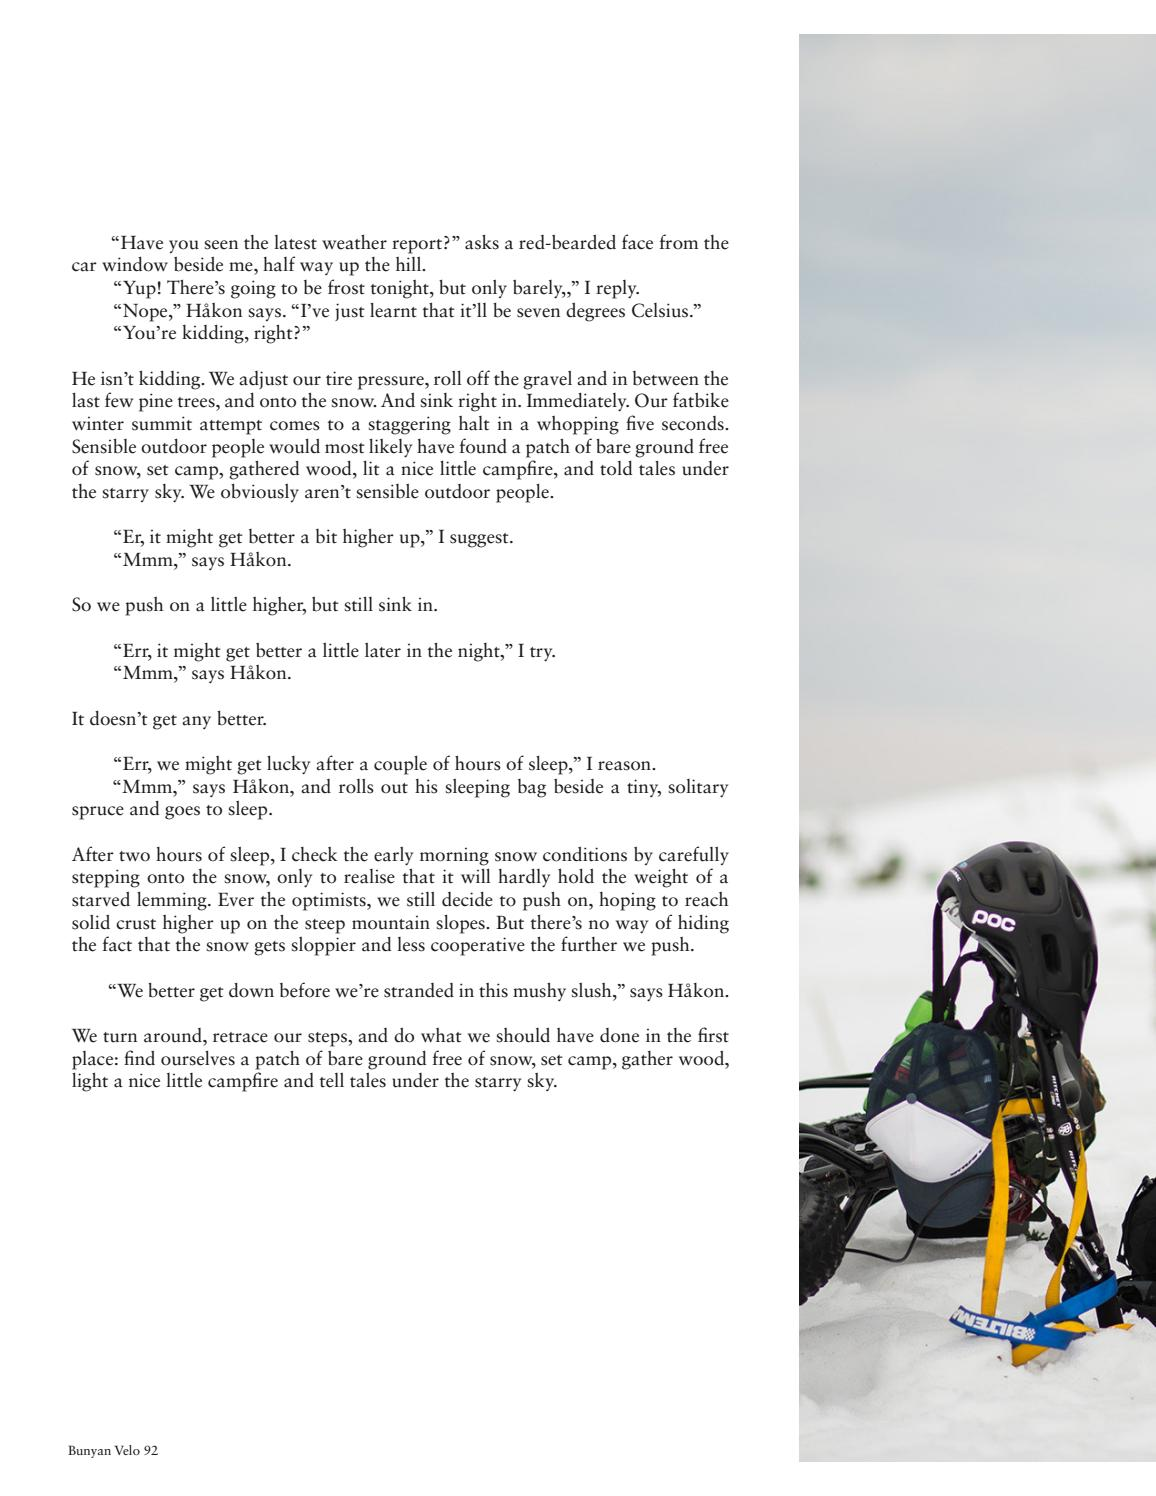 Bunyan Velo Travels On Two Wheels Issue No 07 By Lucas Winzenburg